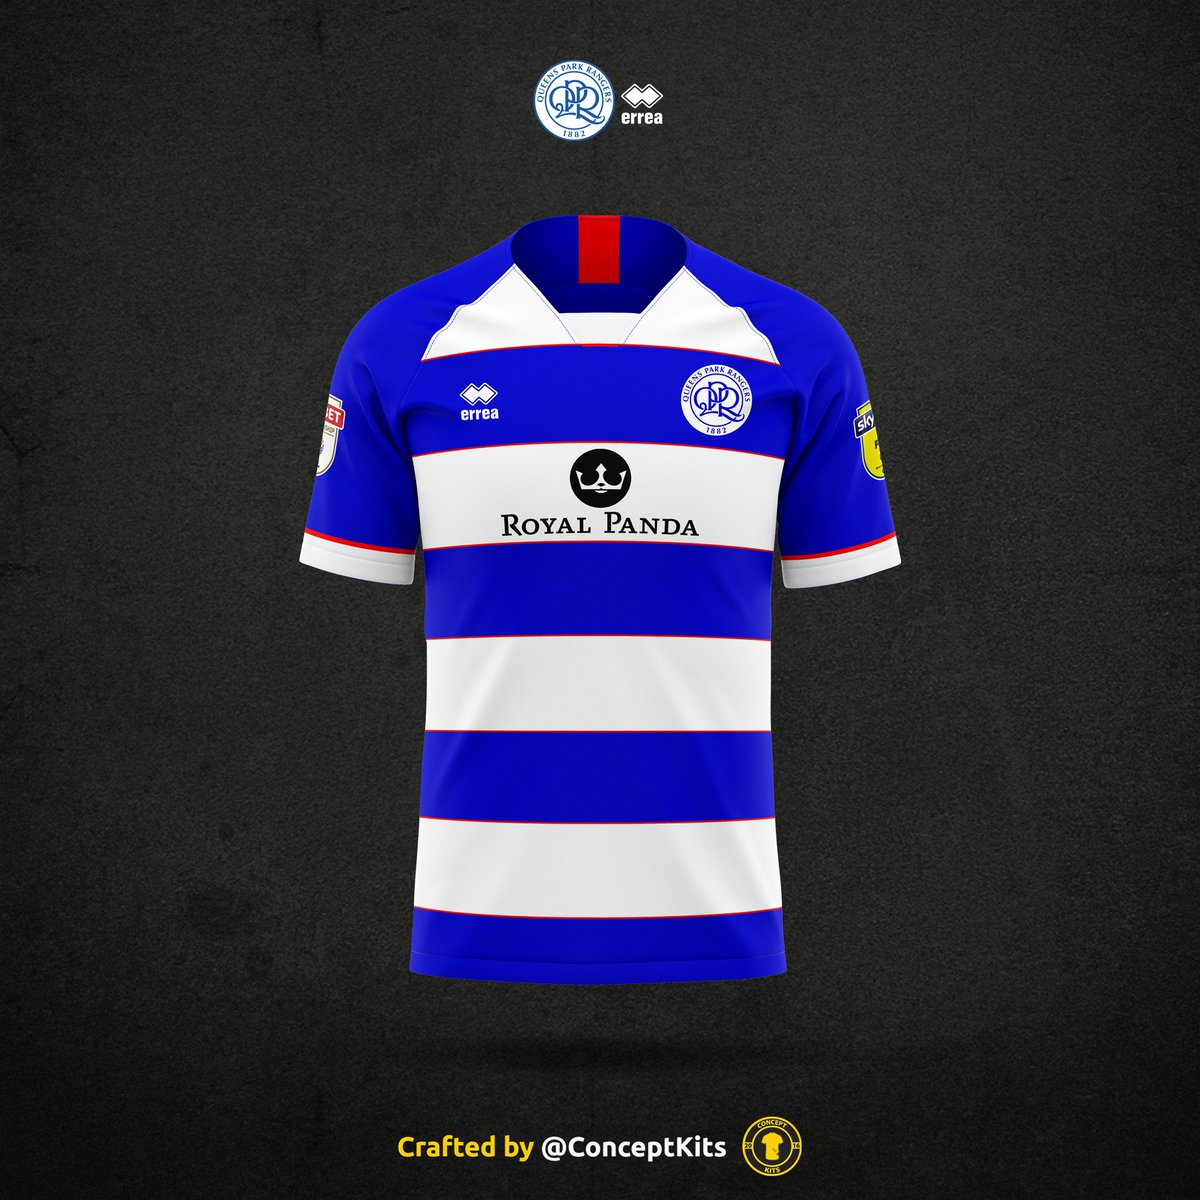 finest selection a5ec5 c8544 Queens Park Rangers Football Club home, away and third kit ...